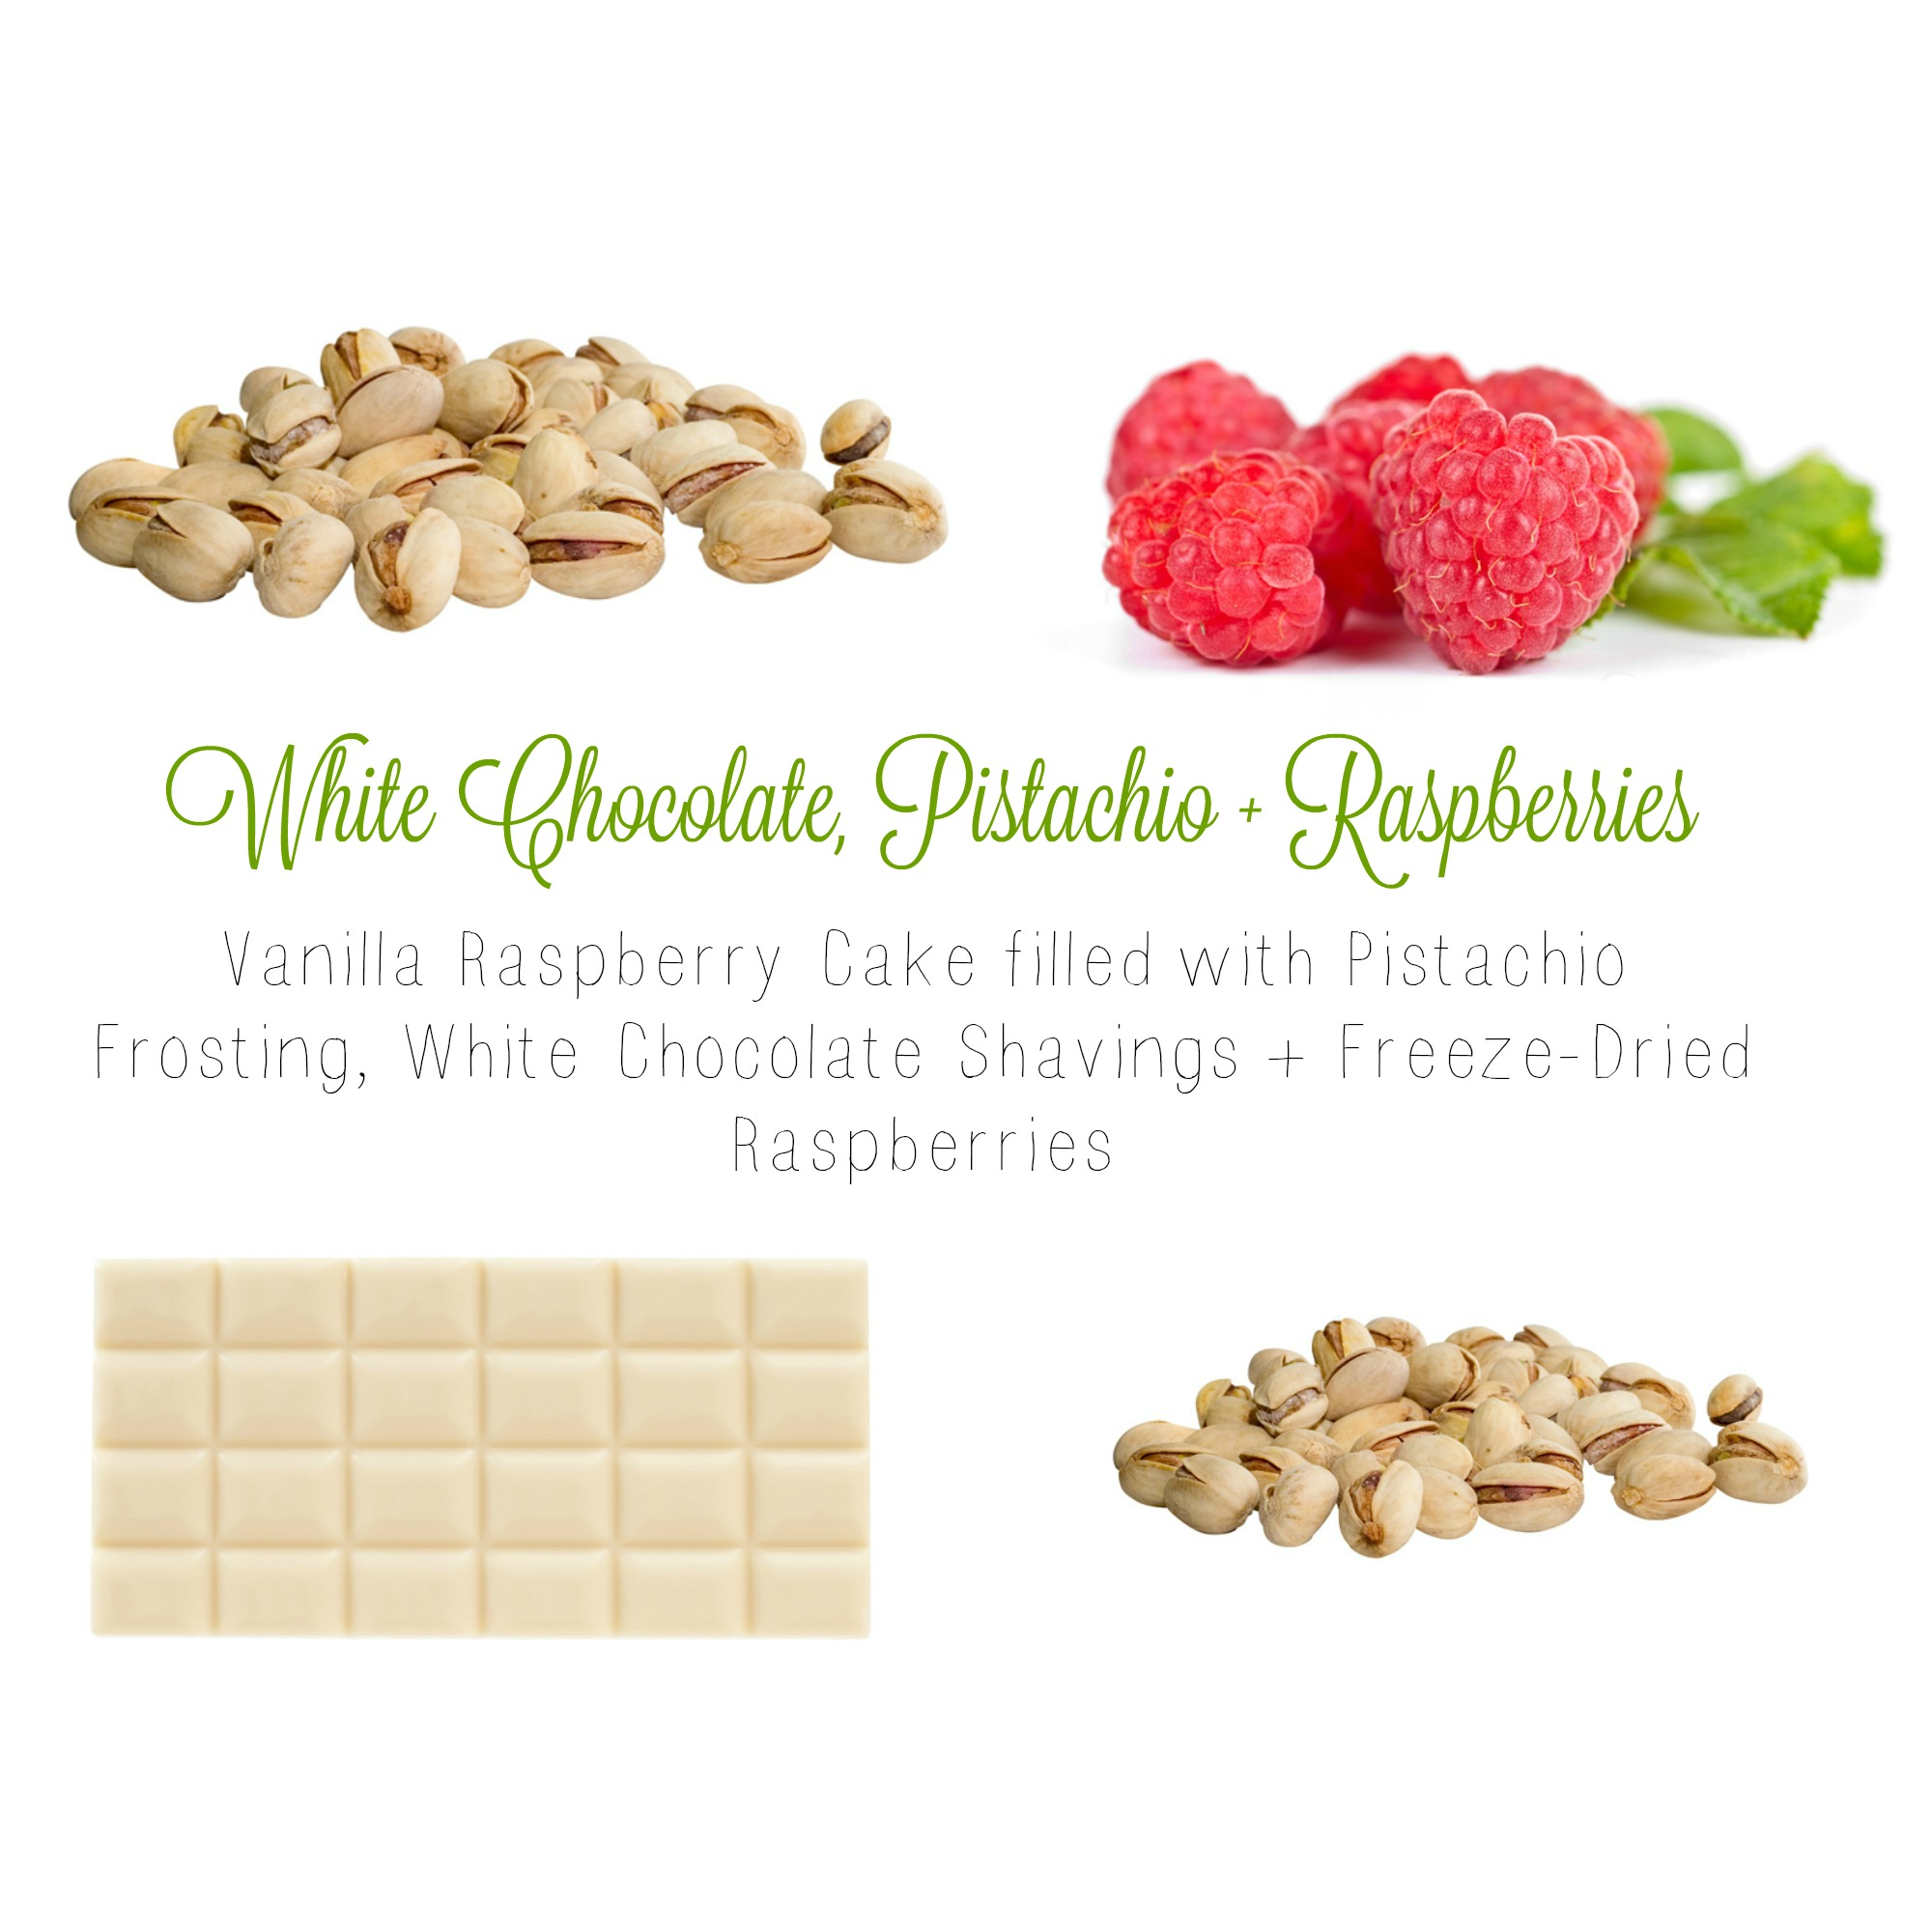 White Chocolate, Pistachio + Raspberries.jpg